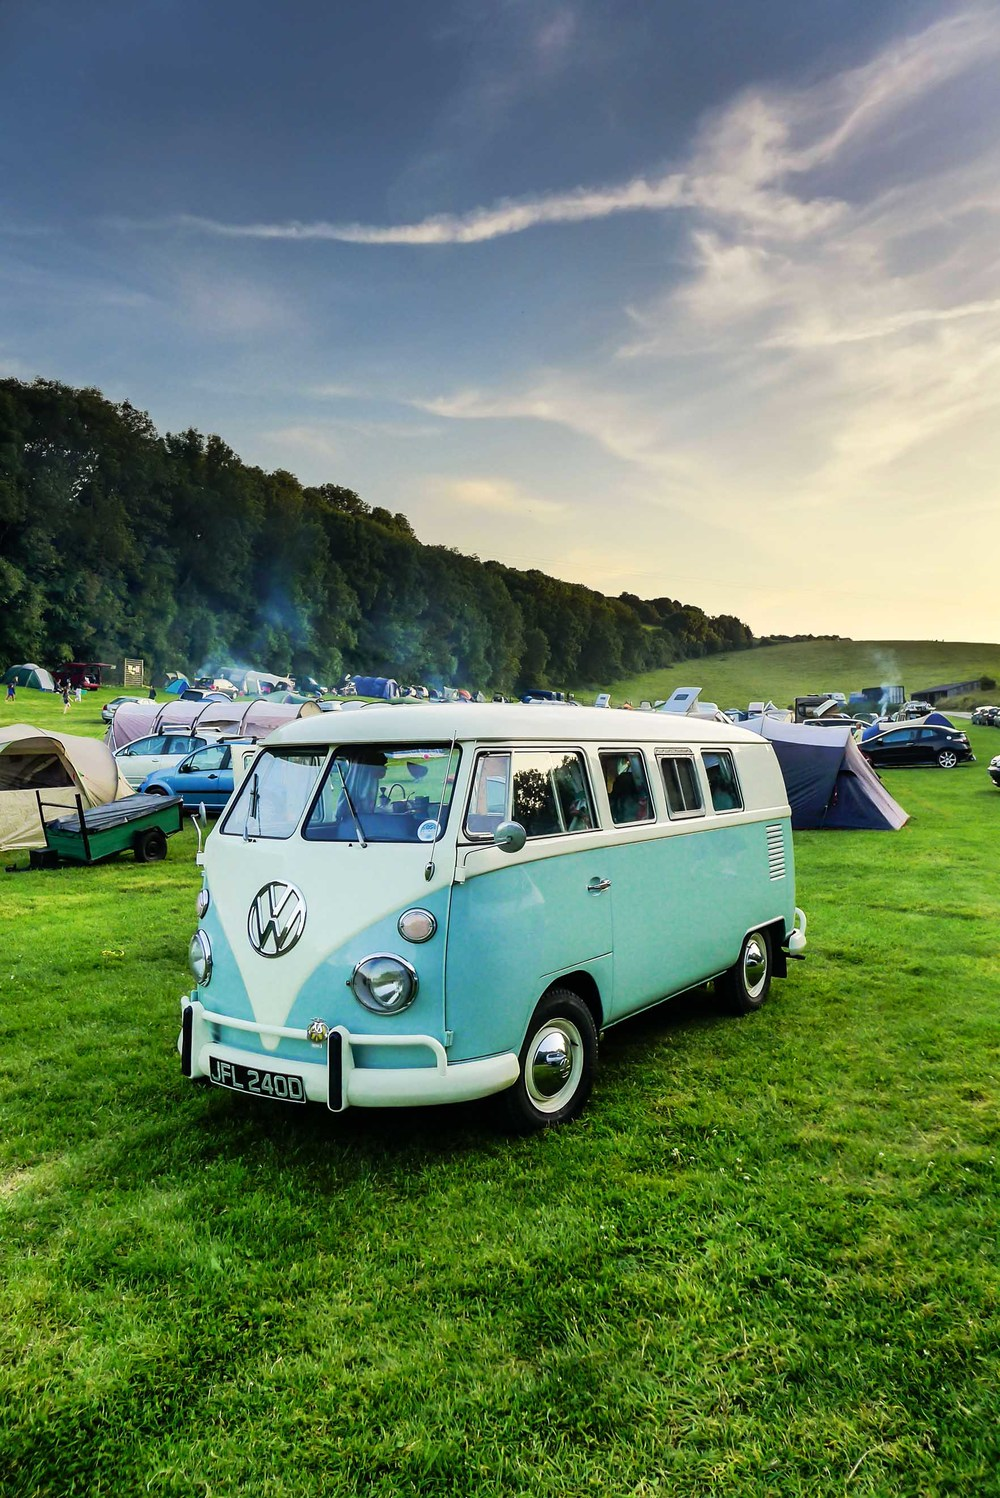 Camping in Alfriston, East Sussex